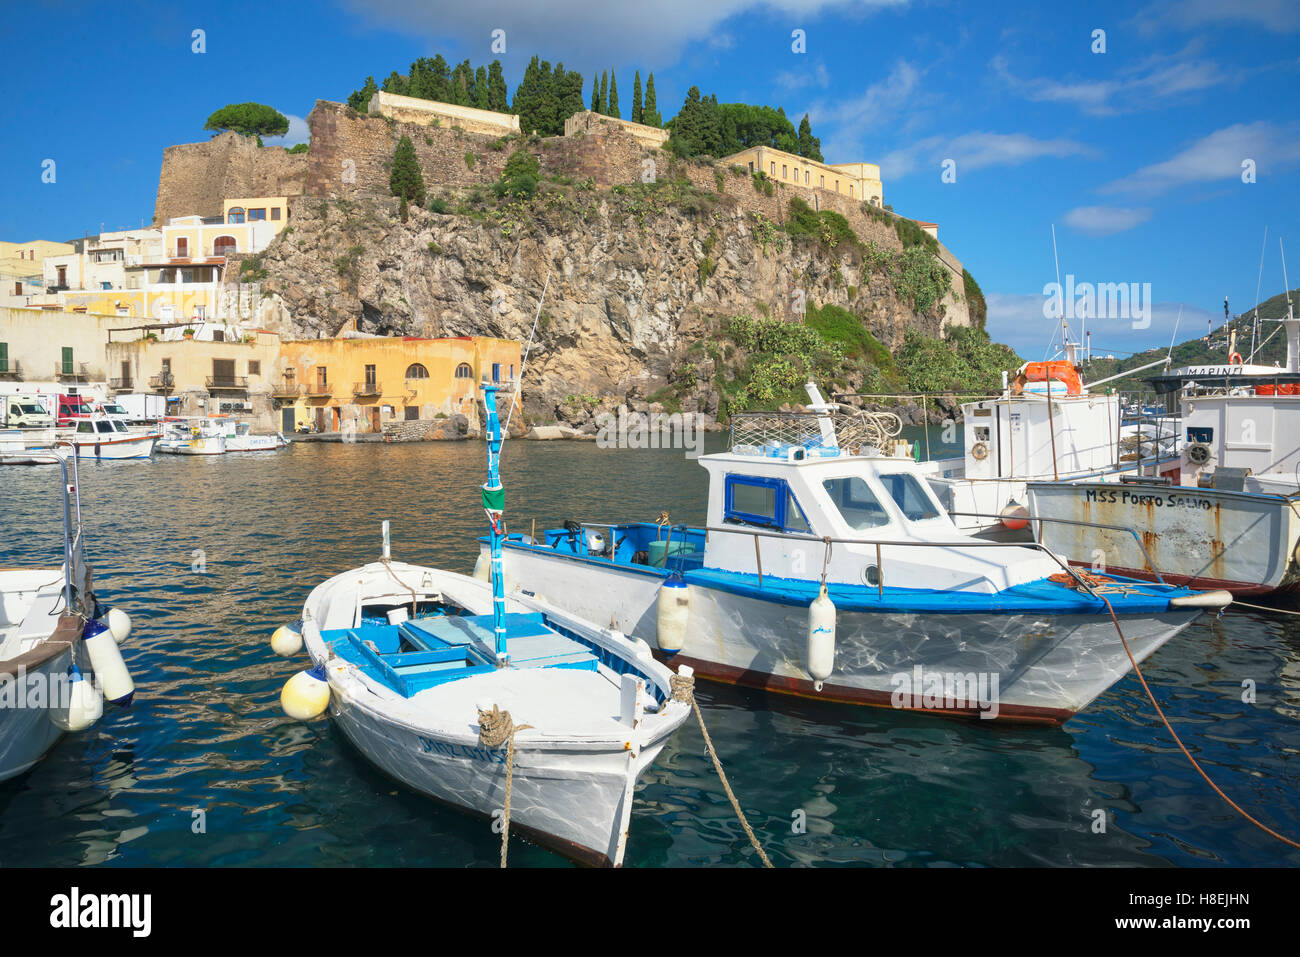 Marina Corta harbor, Lipari Island, Aeolian Islands, UNESCO World Heritage Site, Sicily, Italy, Mediterranean, Europe - Stock Image